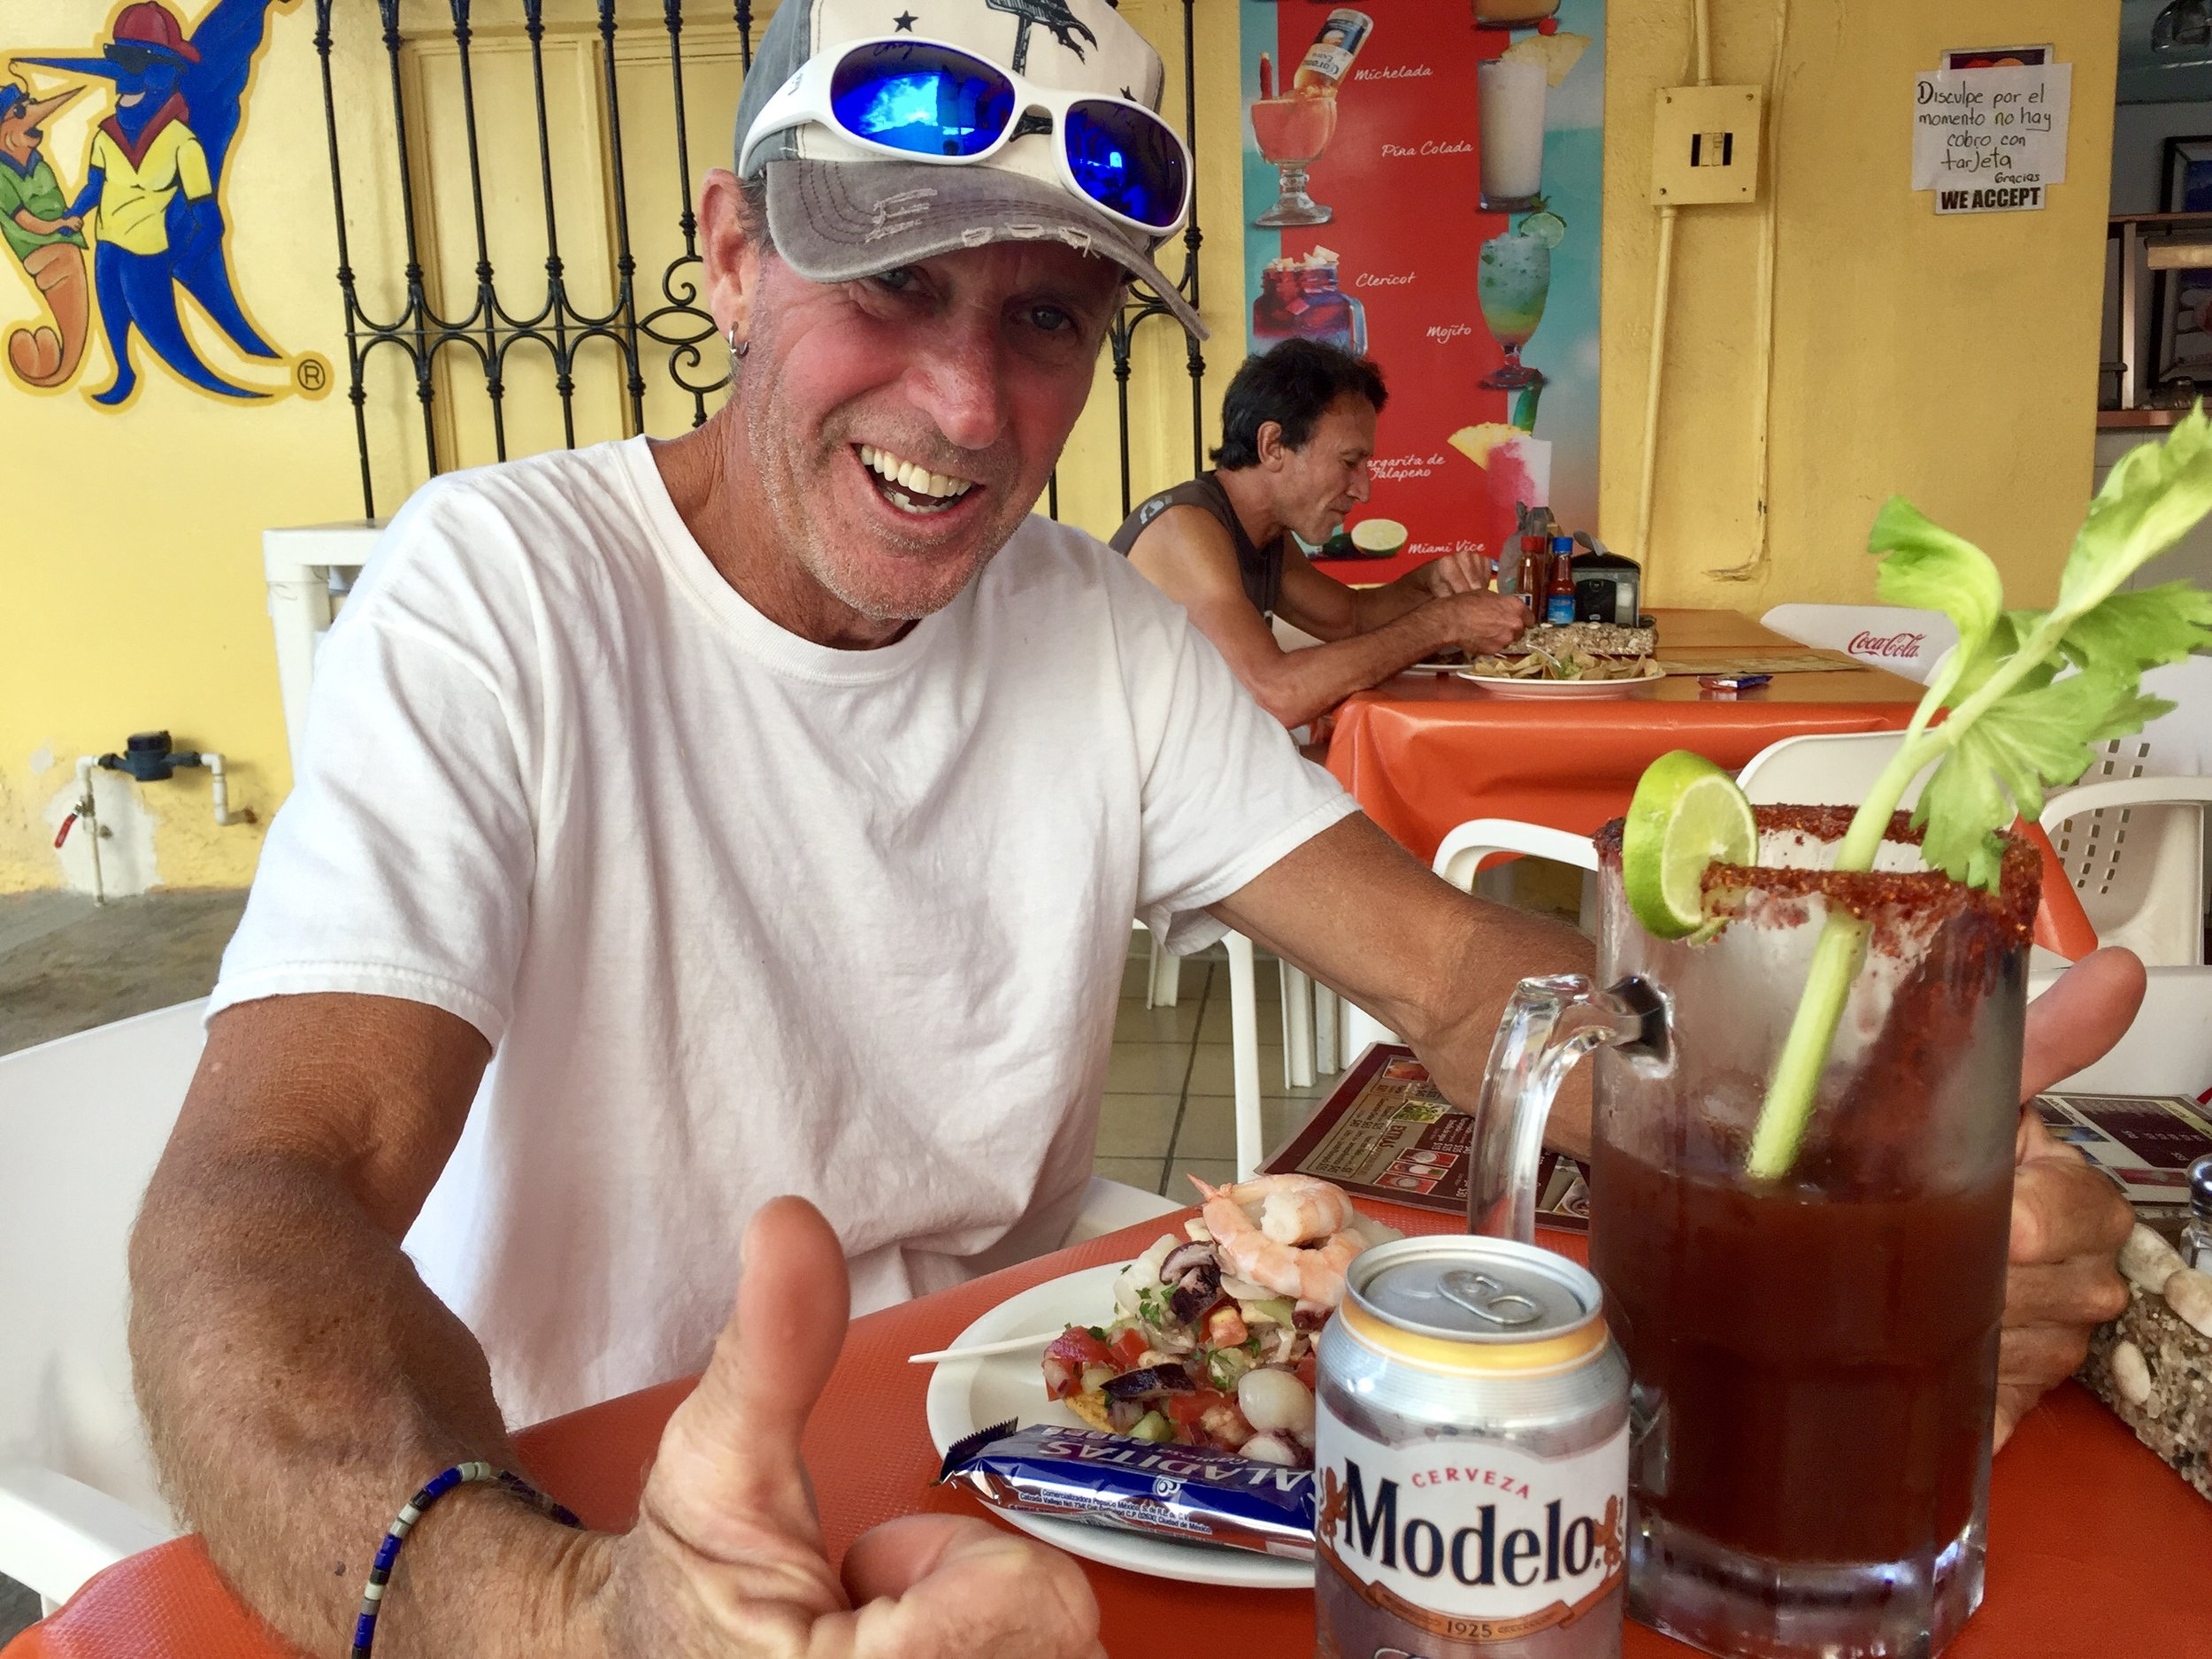 We have our priorities straight. First: ceviche and micheladas.